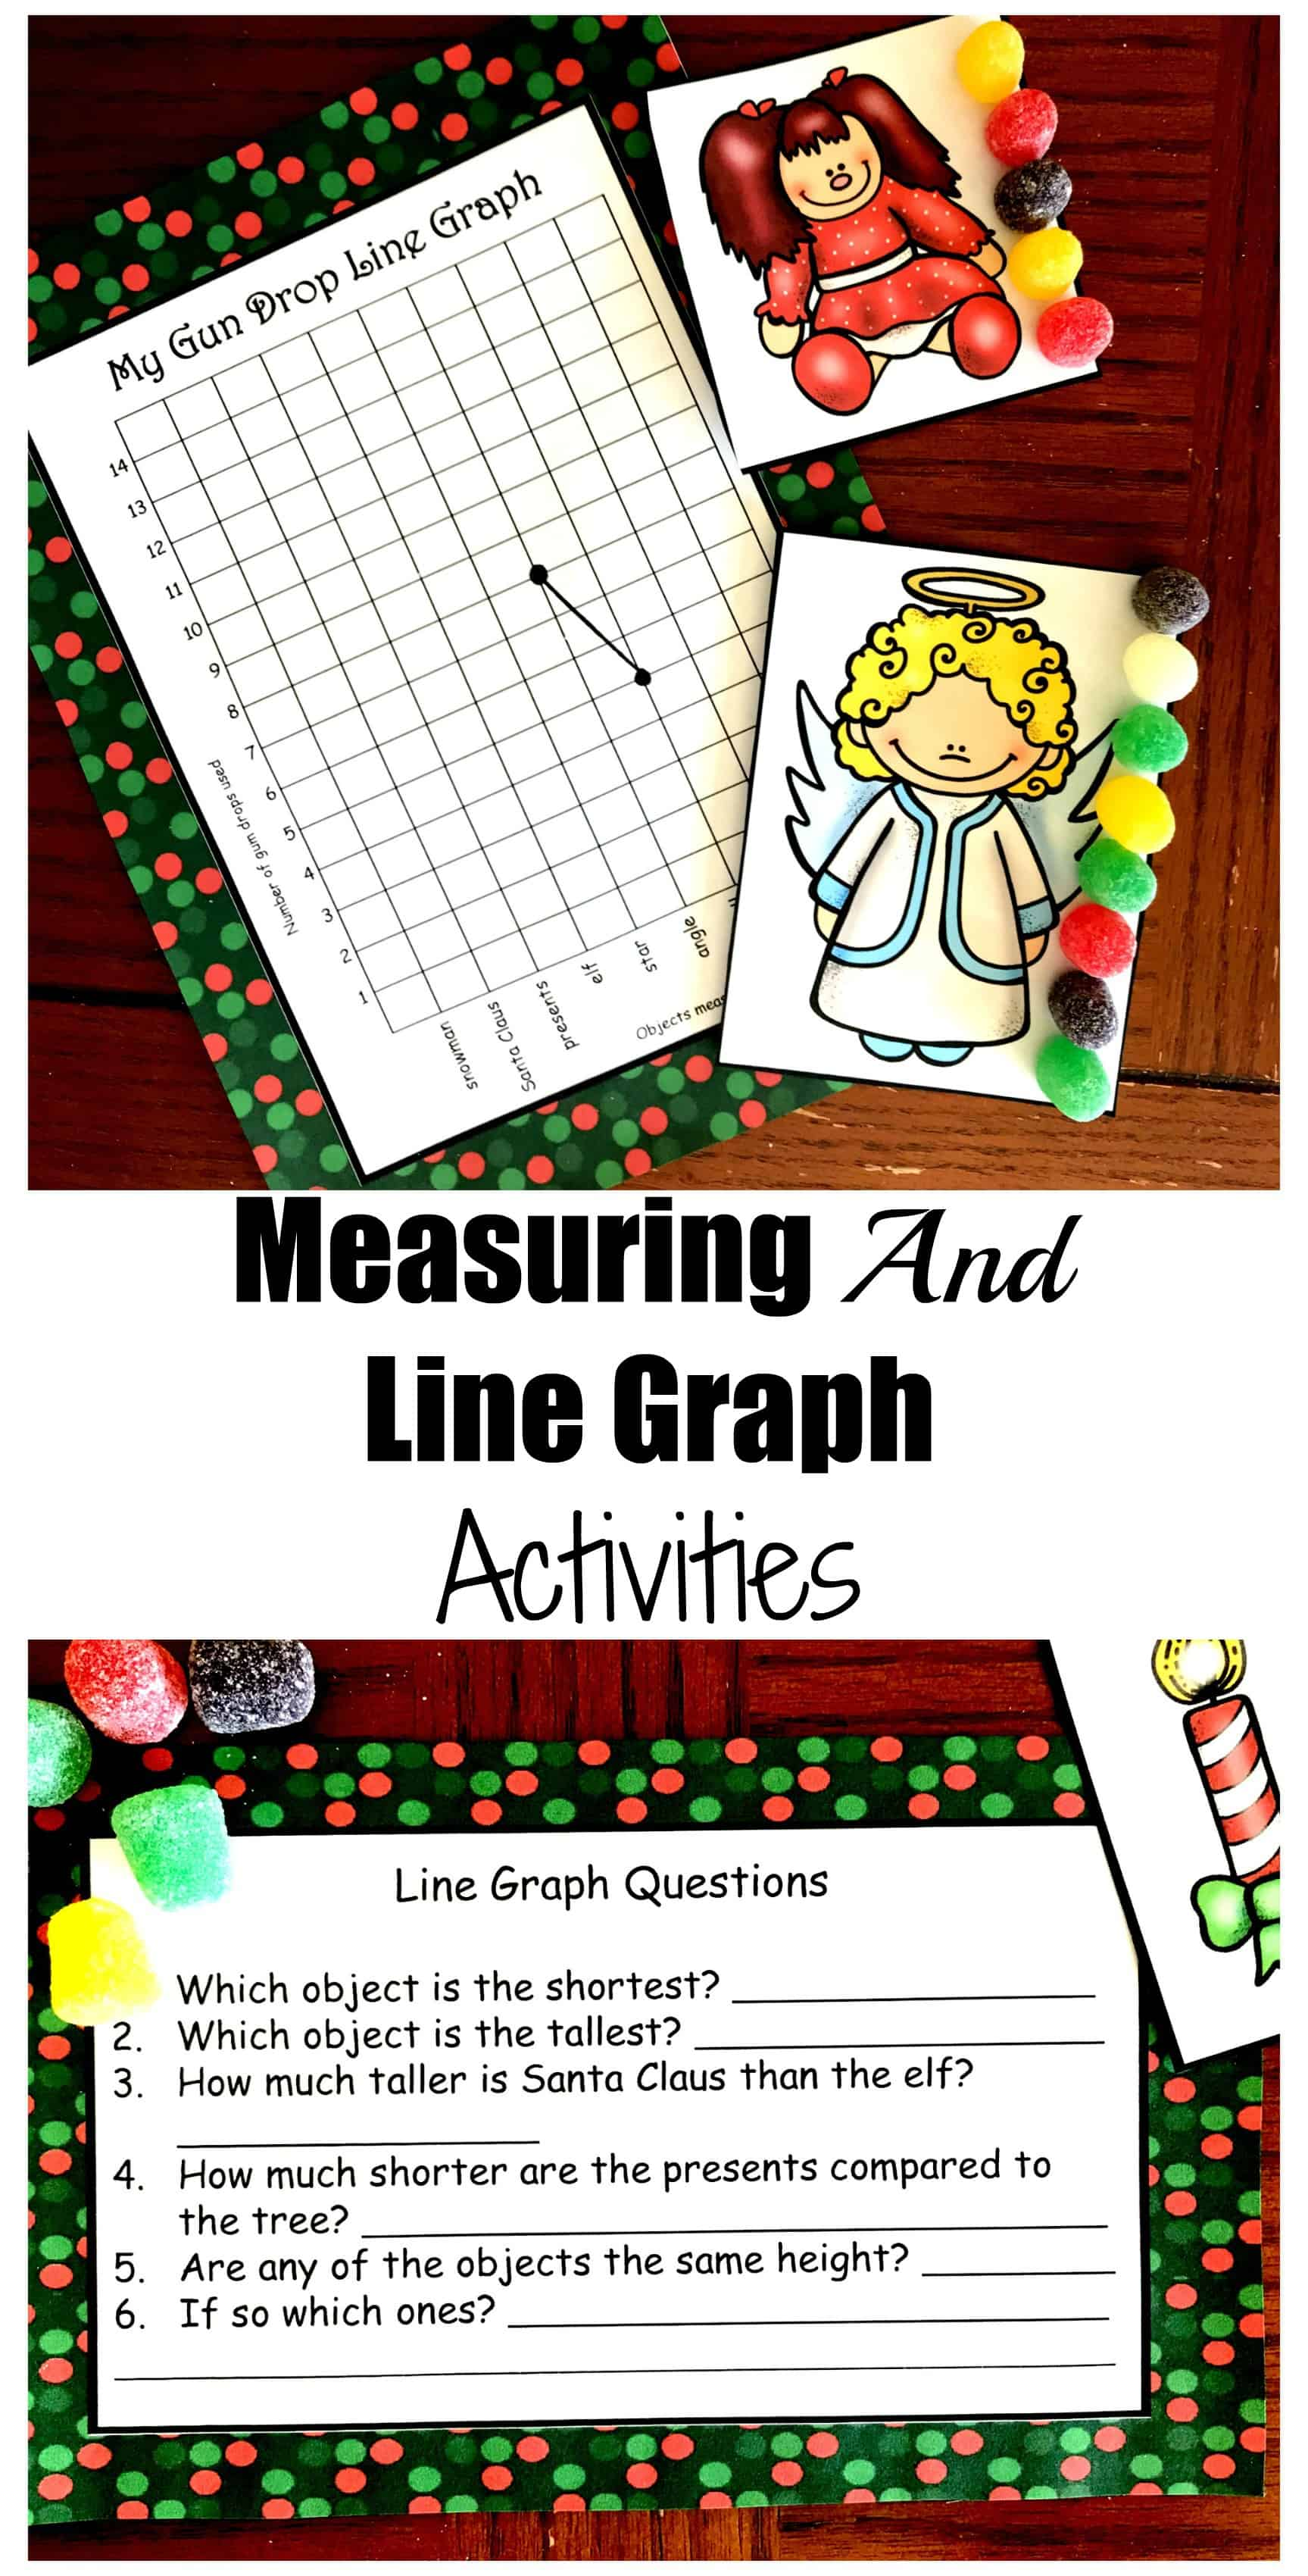 This free Christmas Measuring and Line Graph Activity is a great way to work on graphing and measuring objects to the nearest unit.